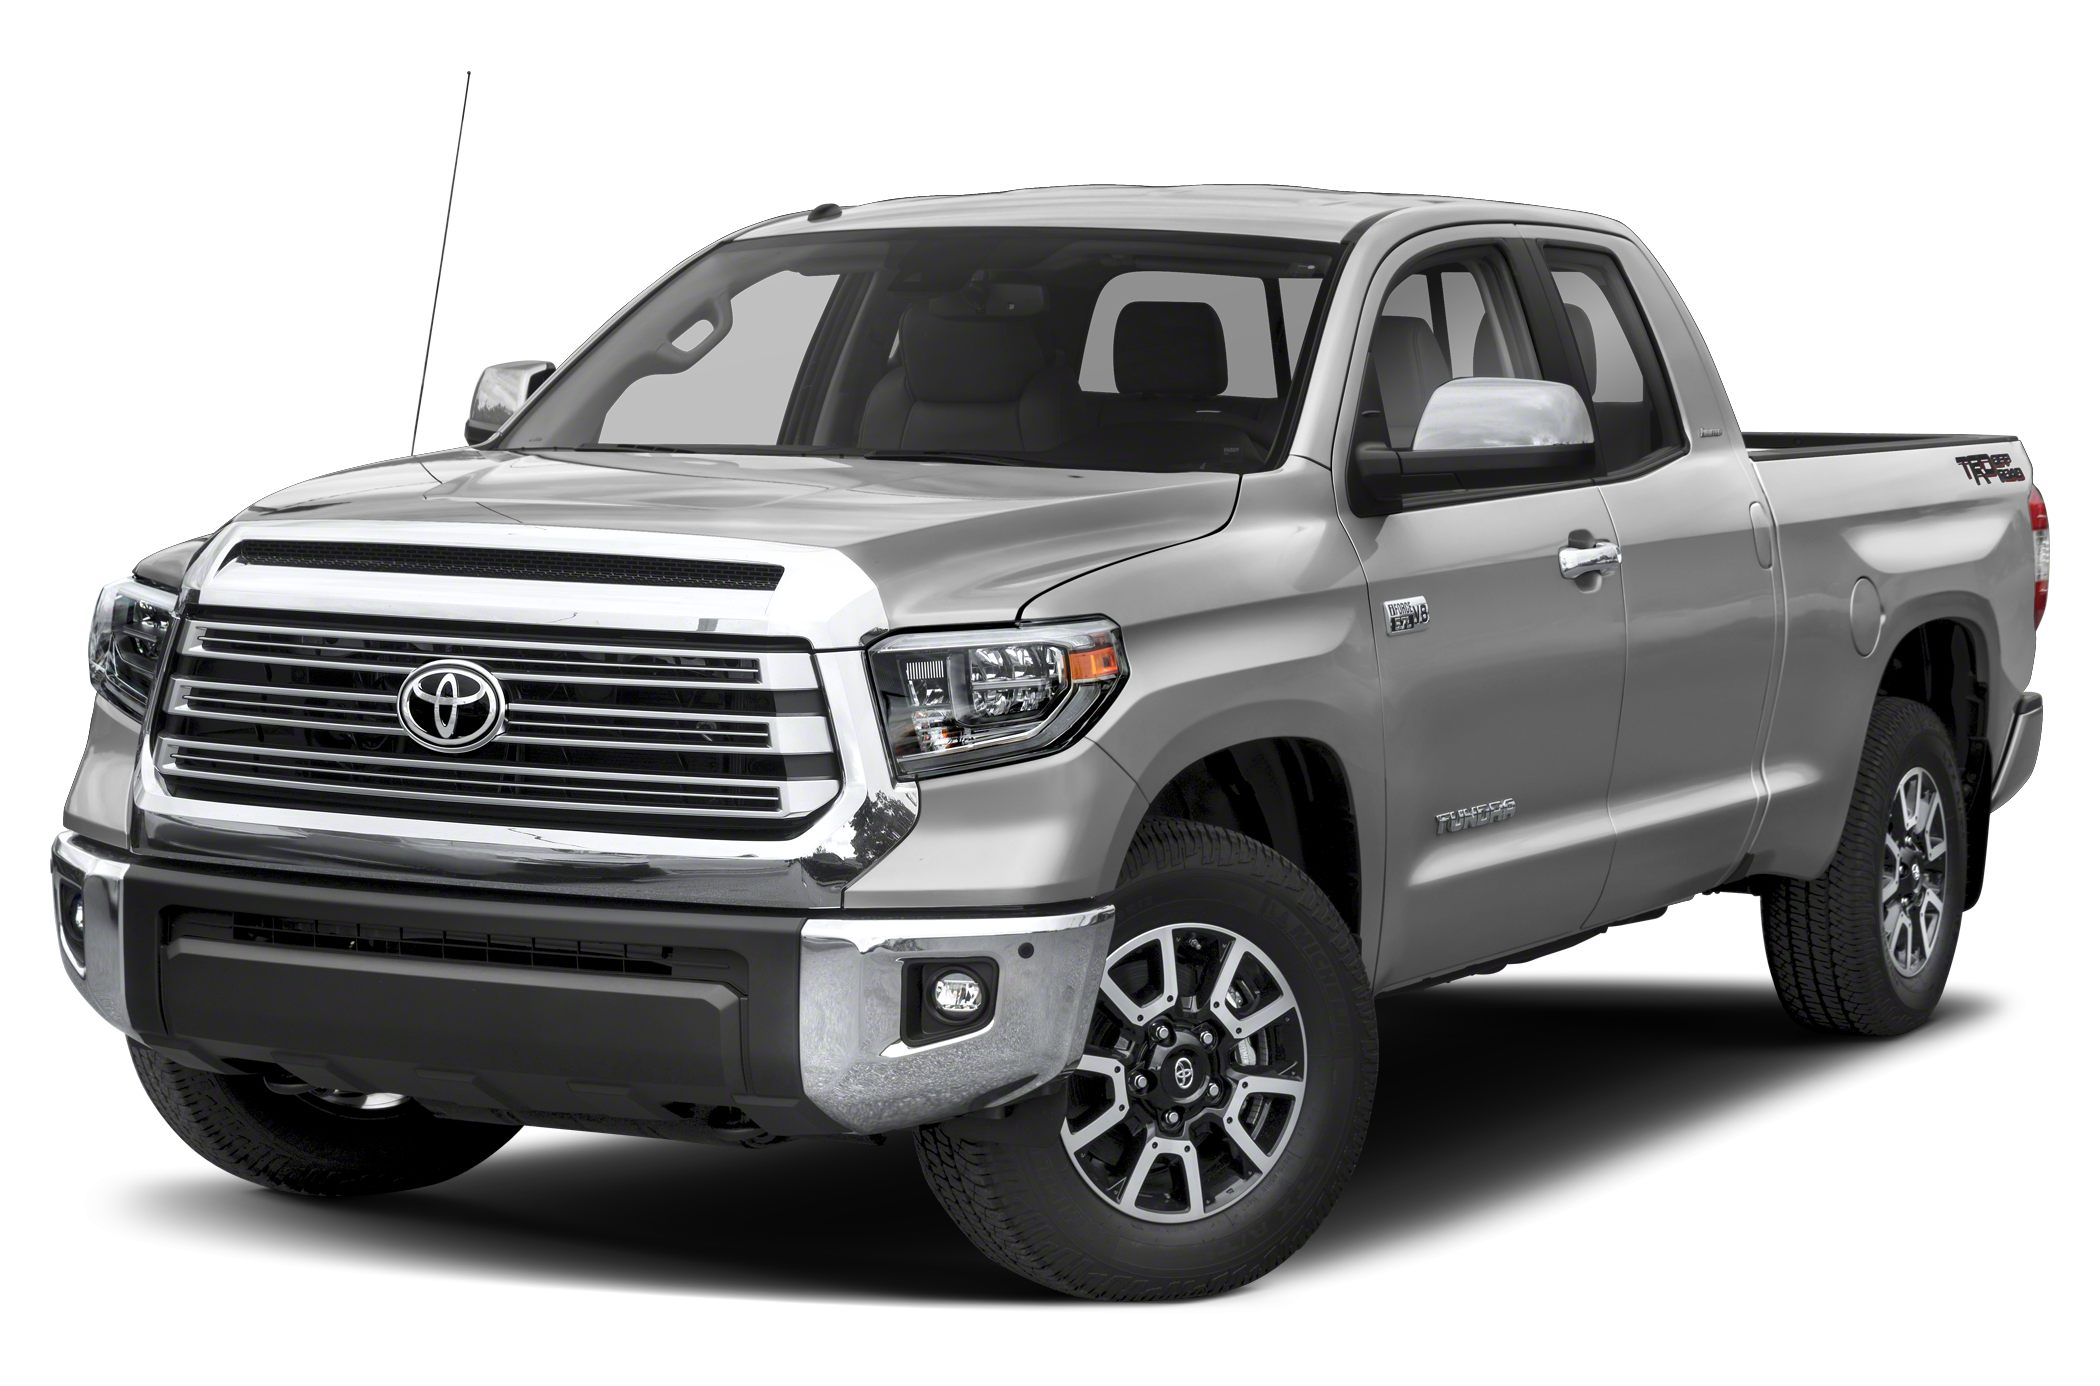 2018 Toyota Tundra Limited 5.7L V8 4x4 Double Cab 6.6 ft. box 145.7 in. WB